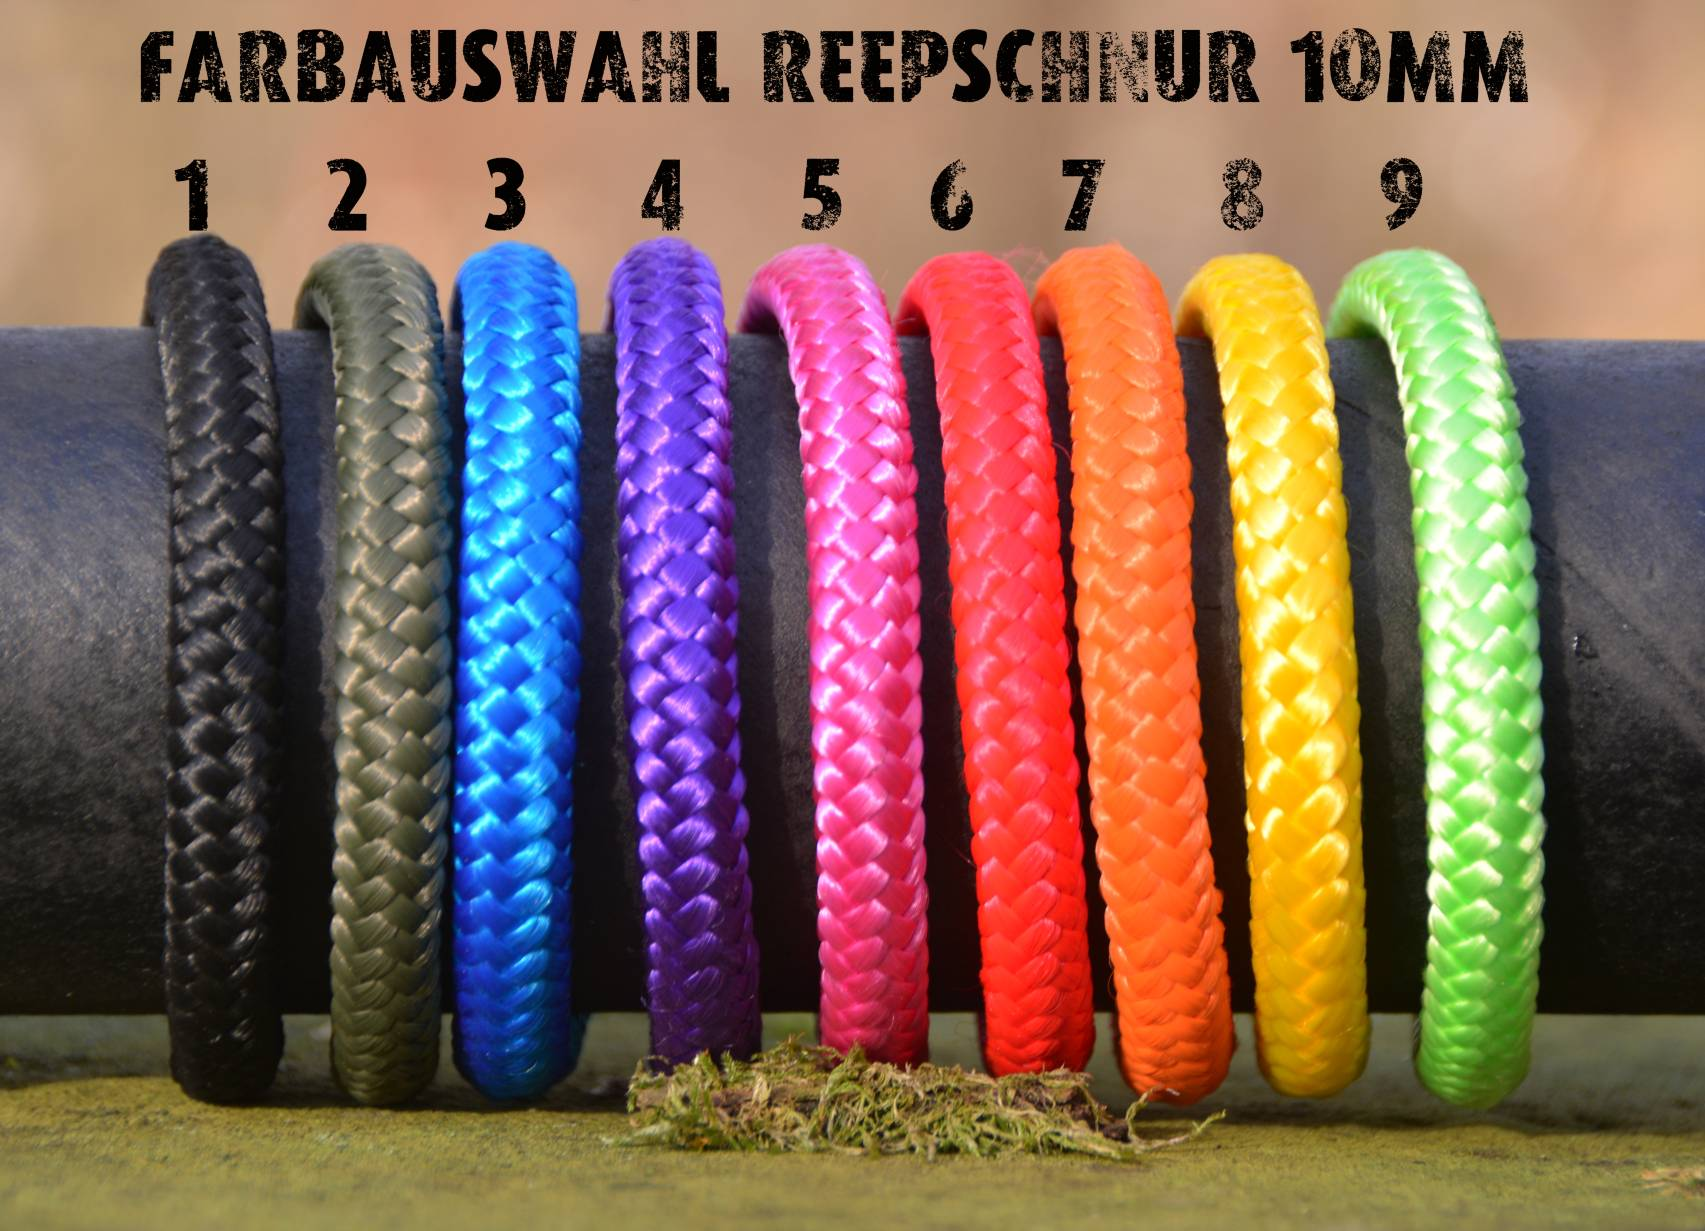 Farbauswahl 10mm